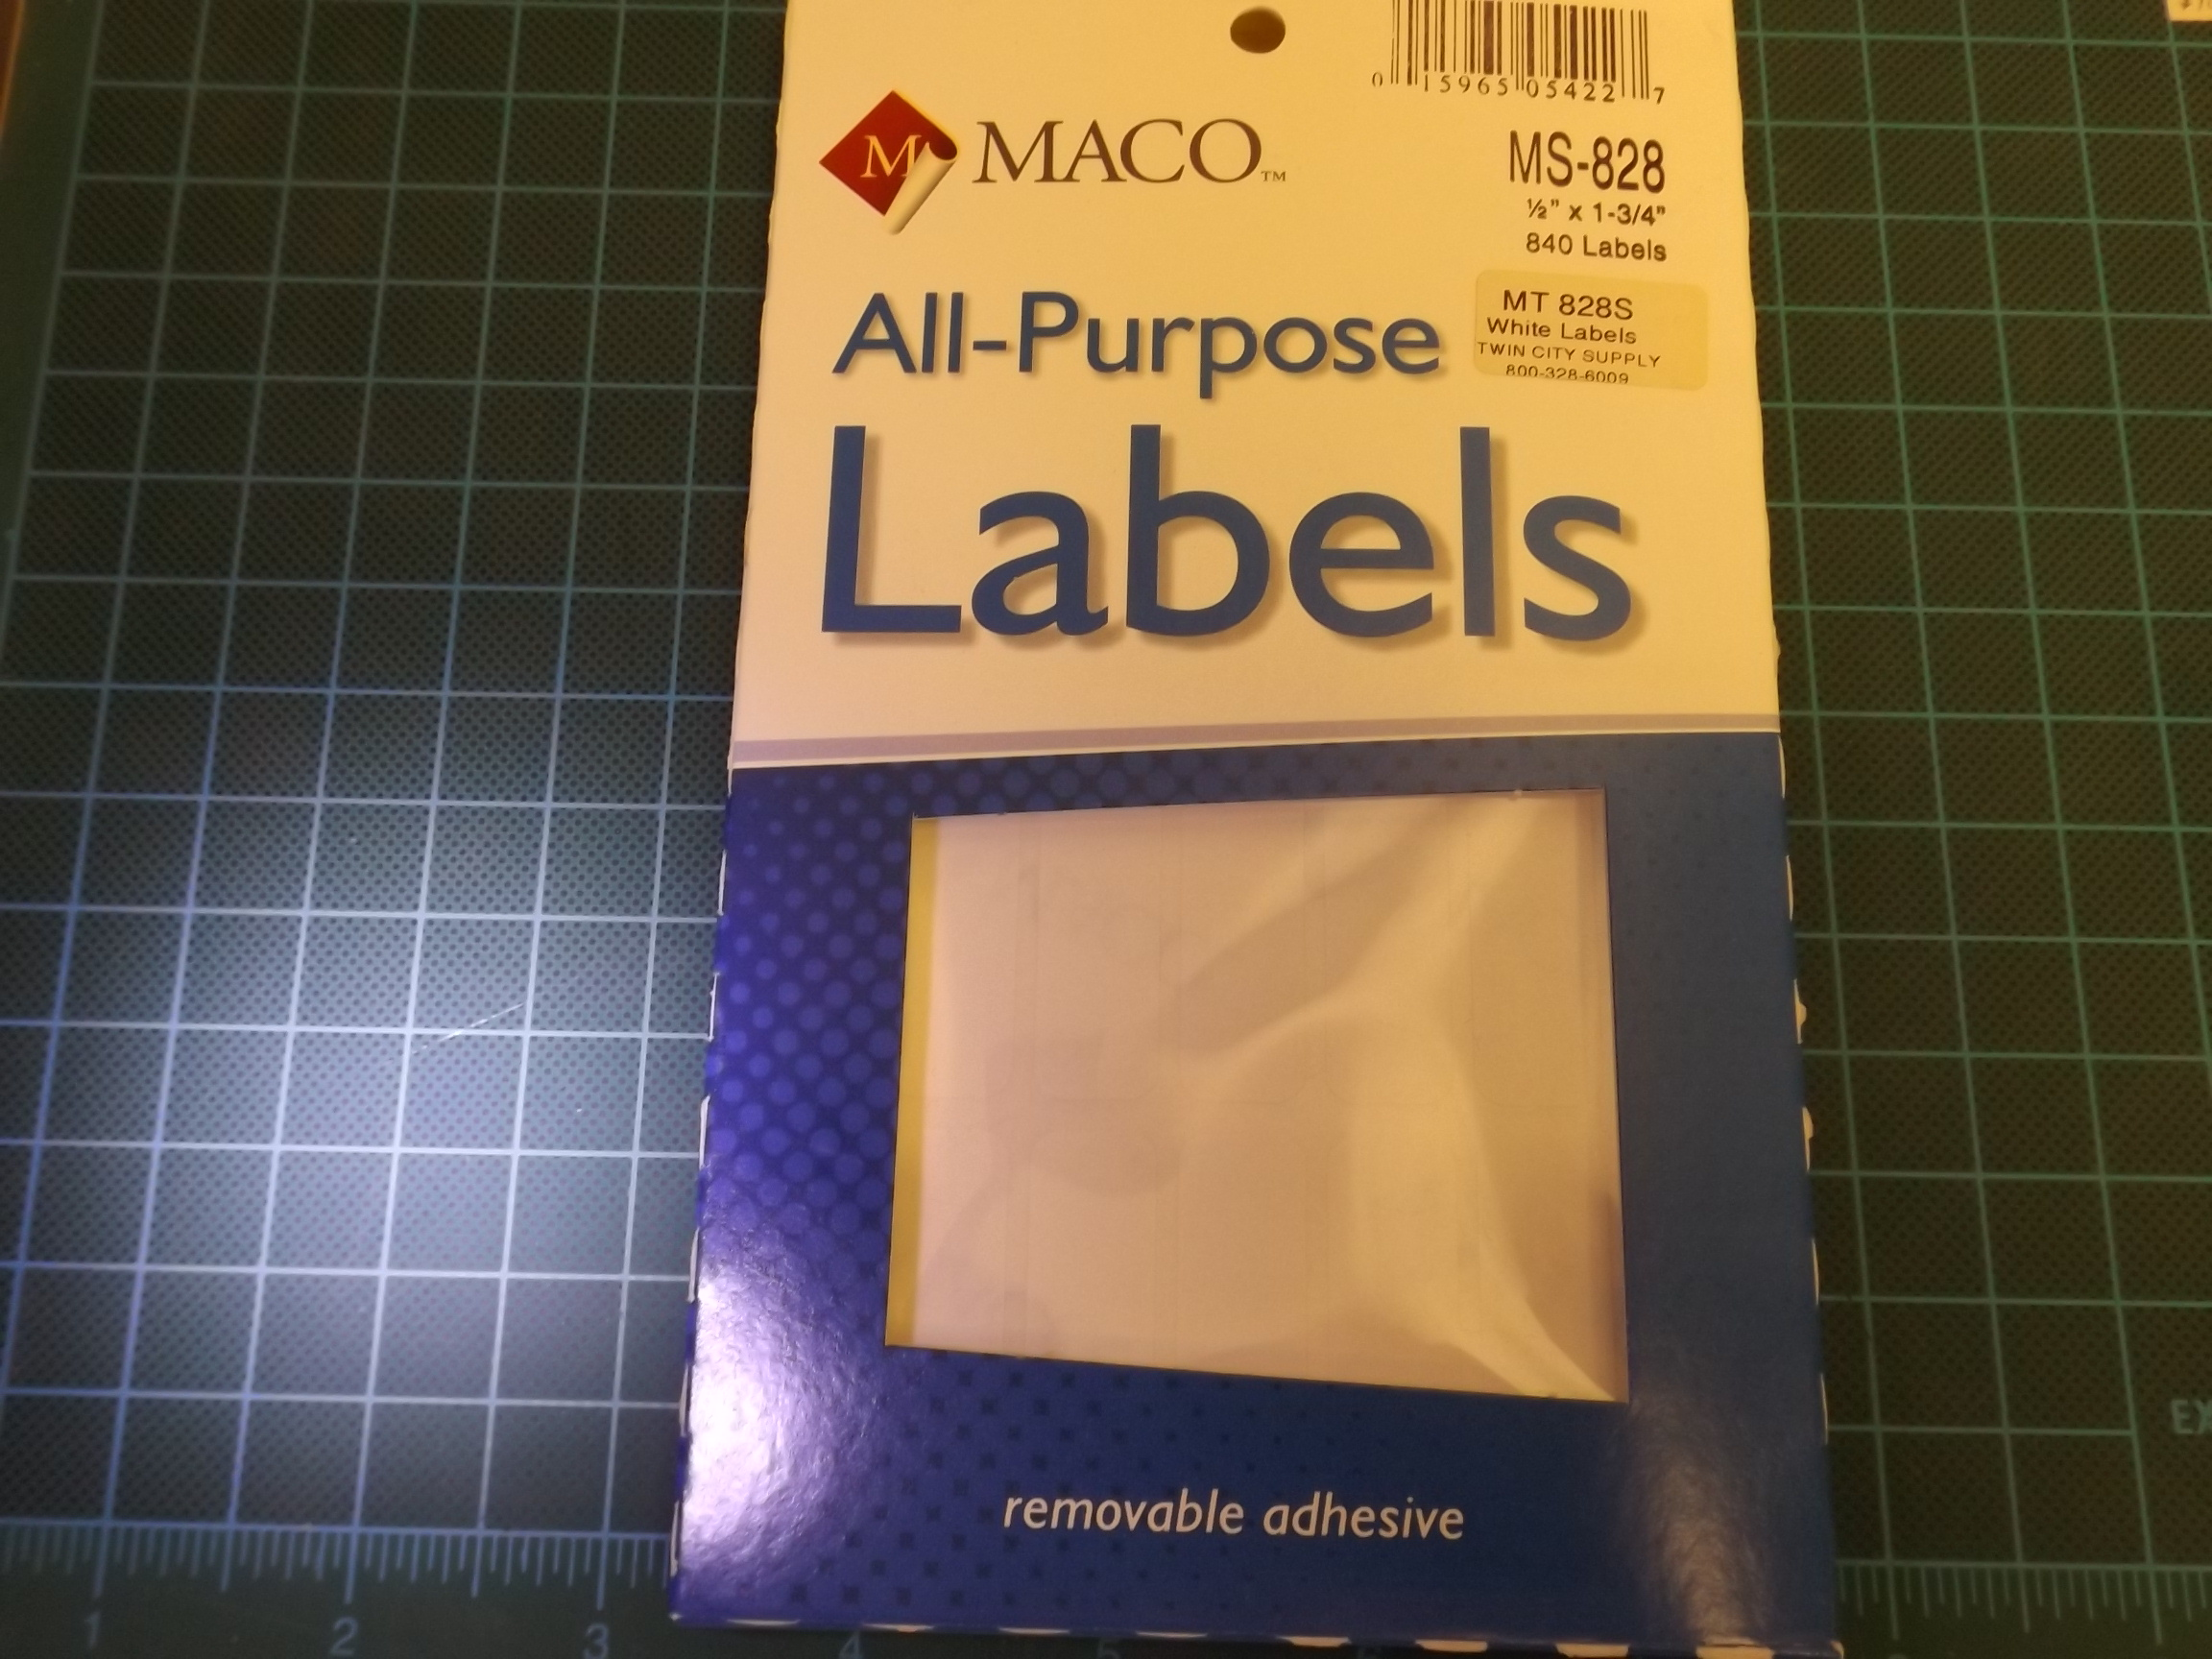 MT828S Maco White Removeable Adhesive Multi-Purpose Labels--Rectangular MS-828